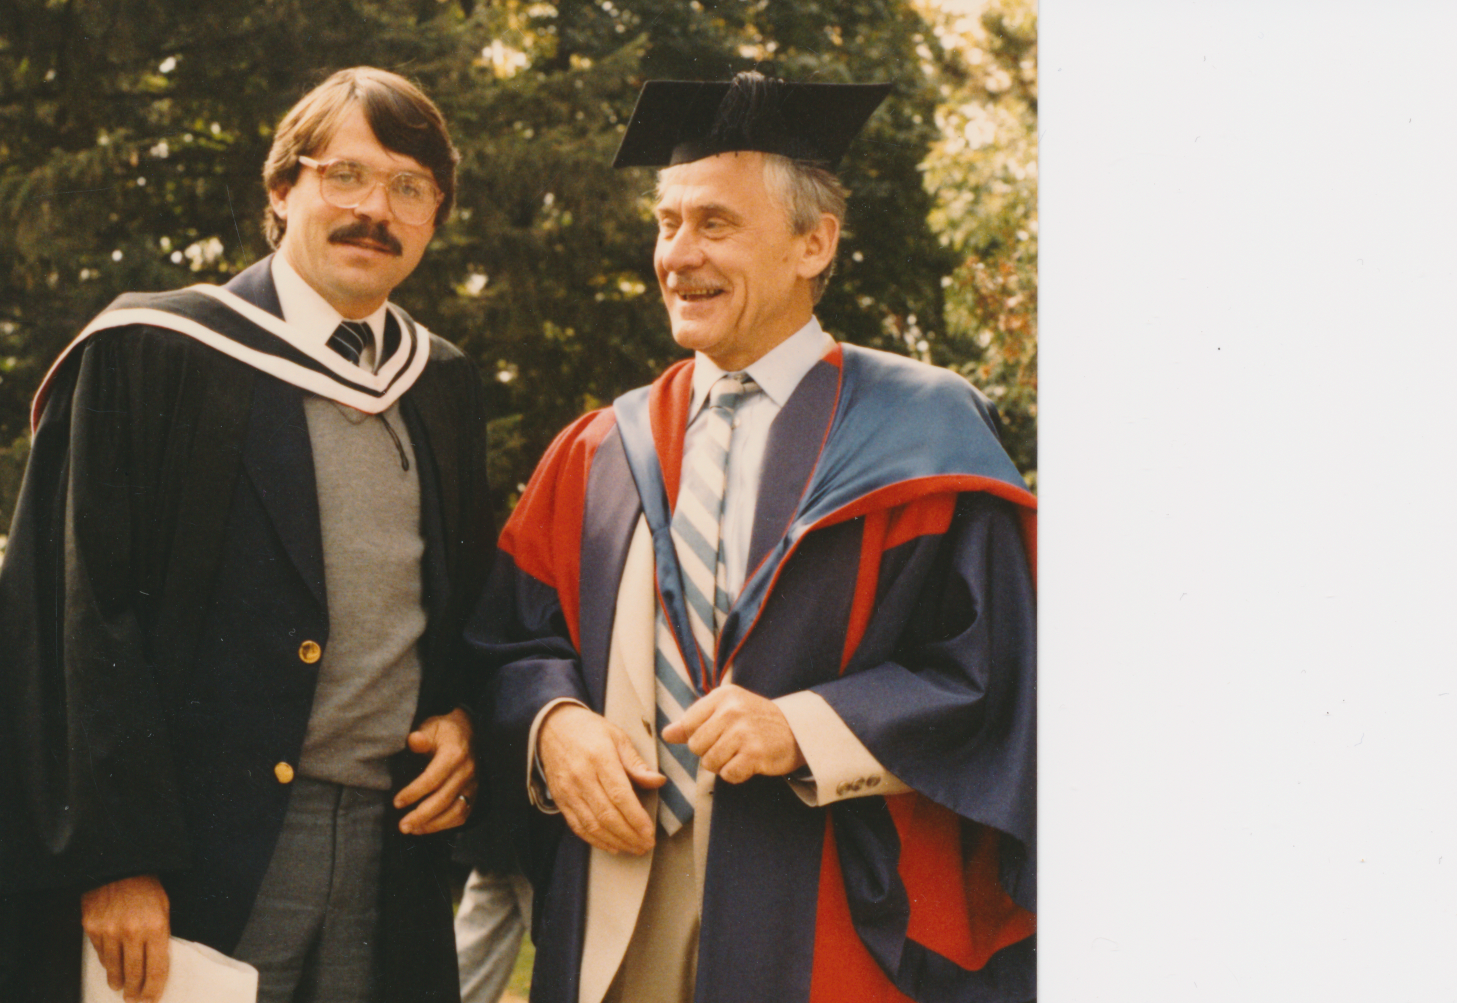 Receiving Masters degree in Philosophy with Terry Williams